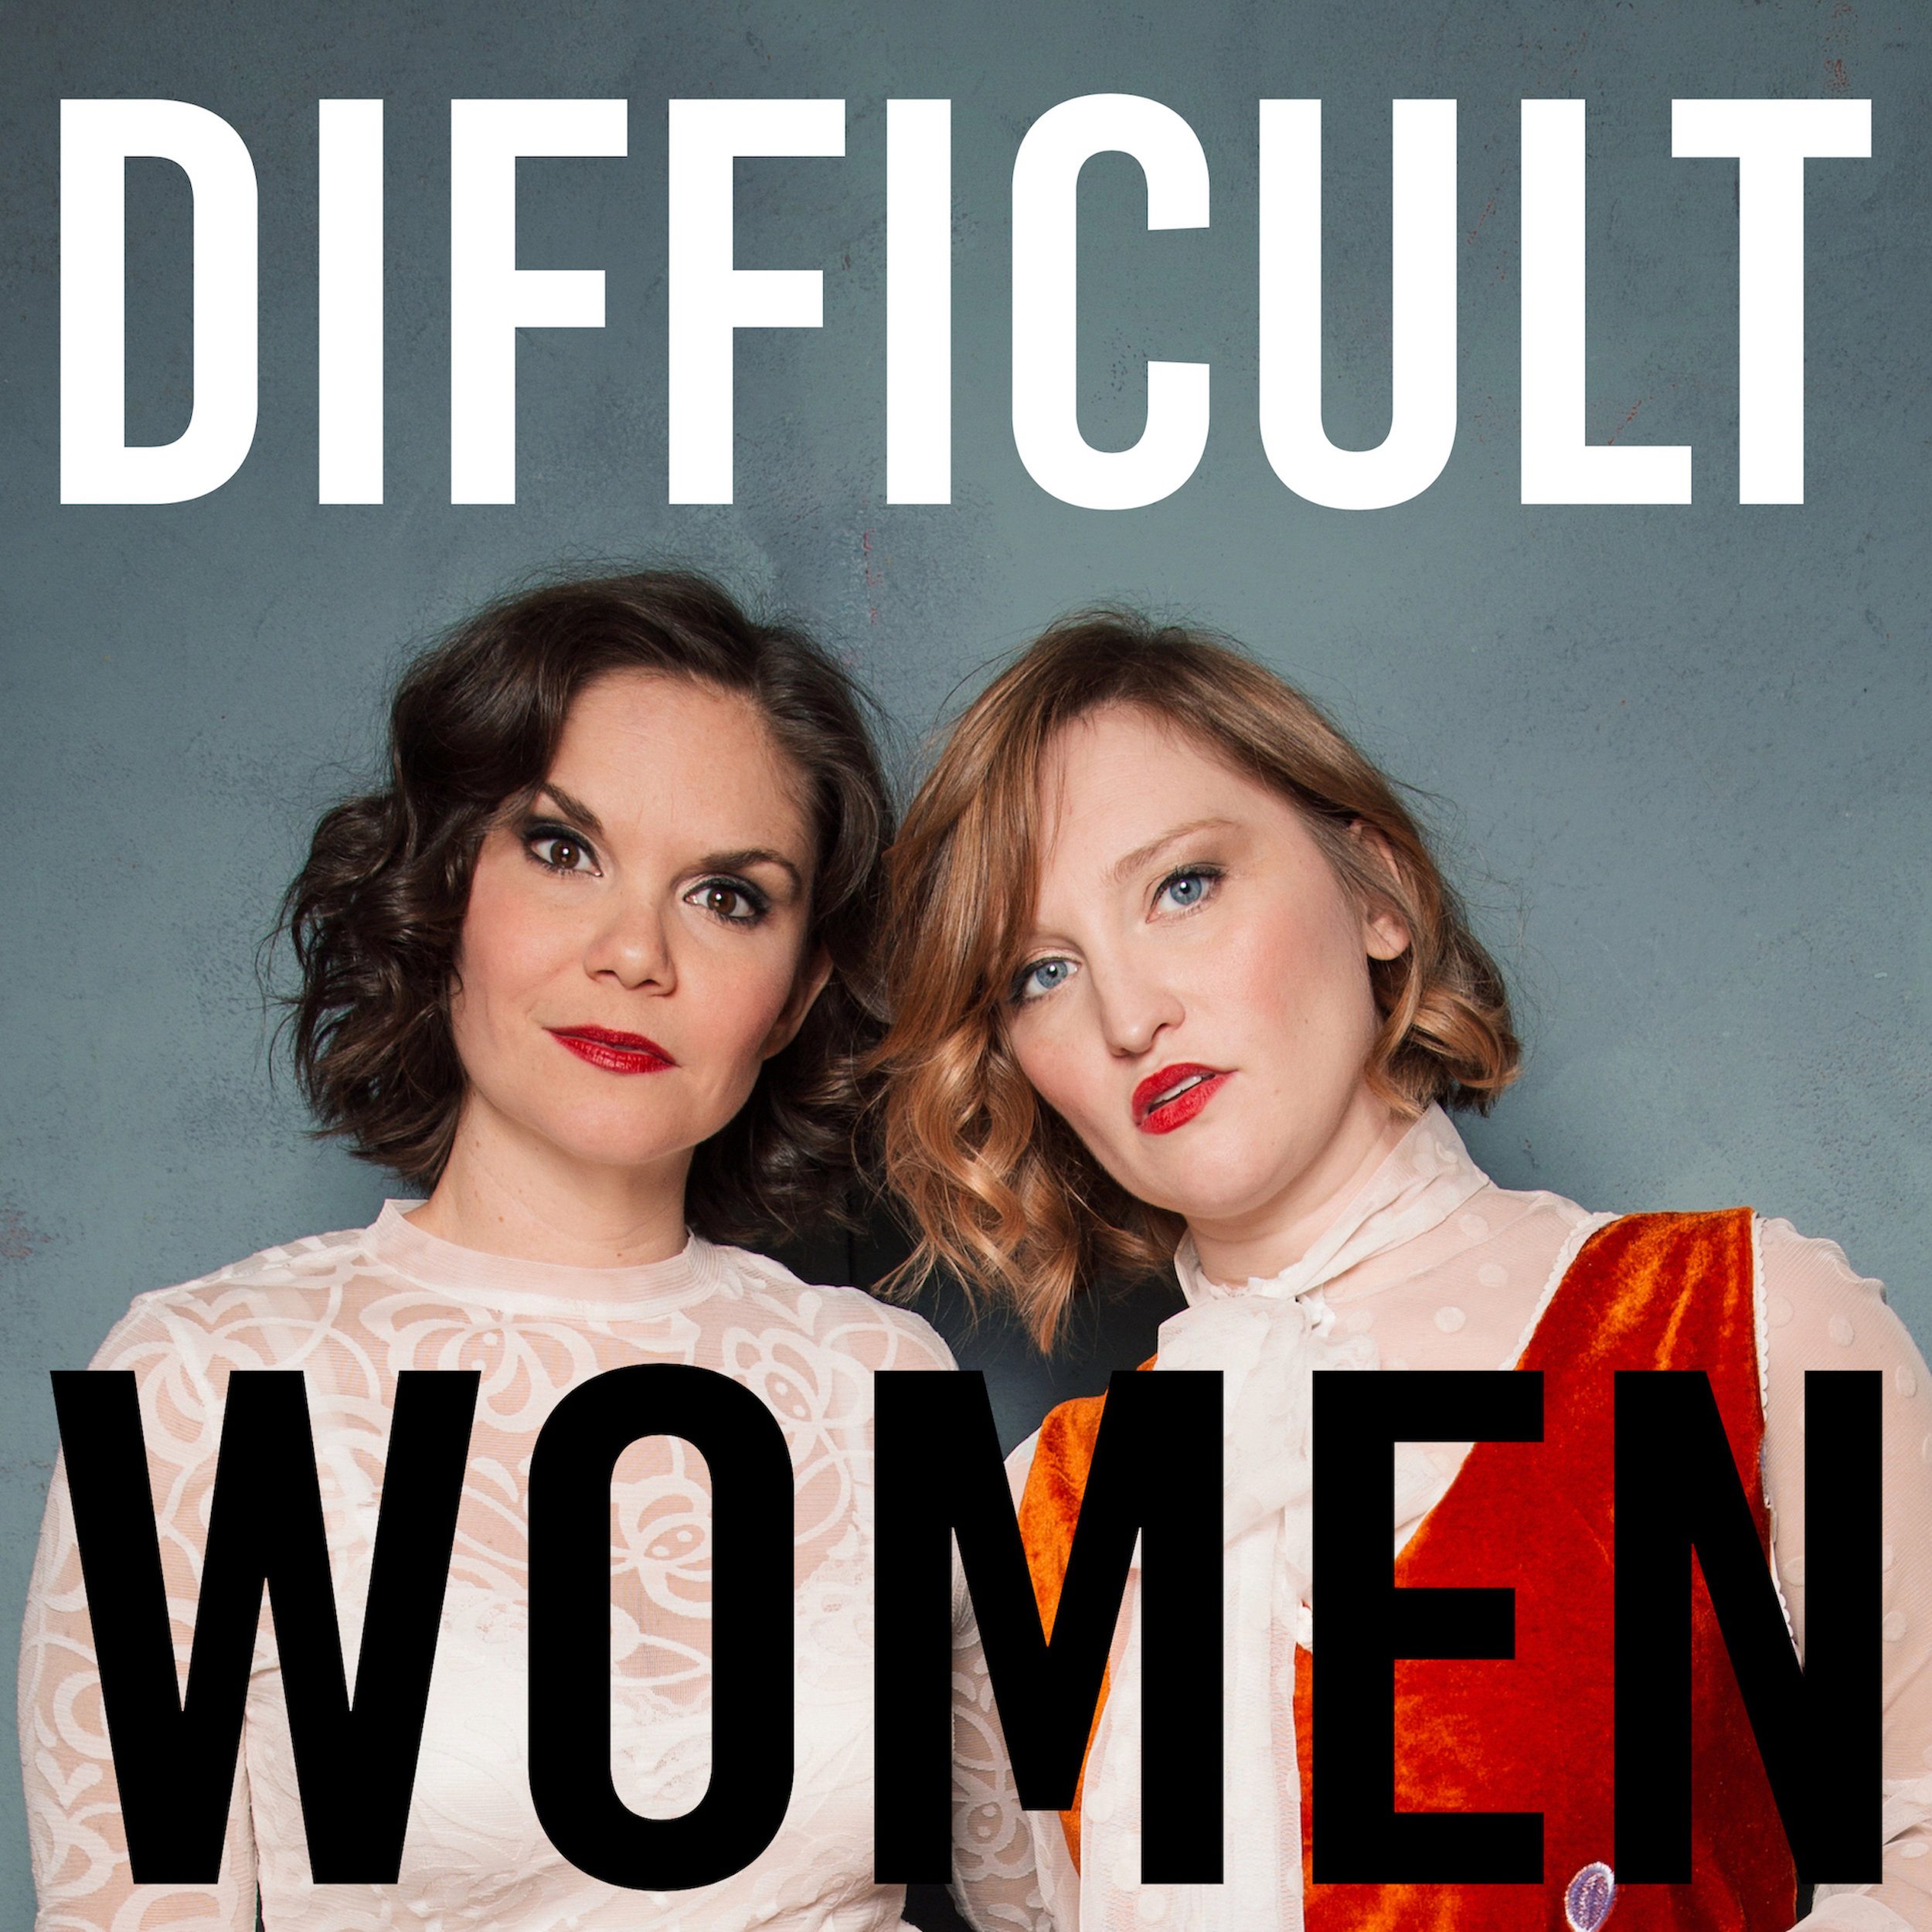 "Difficult Women - Katy Frame & Marie Cecile Anderson are the irreverent musical comedy duo known as Reformed Whores, and they're on a mission to empower, normalize the female experience, and bust a few guts in the process! After performing across the country together for years, they decided to start a podcast about what it means to be smart, opinionated, strong, independent women in showbiz and why that makes them ""difficult."" Katy & Marie hilariously dive into topics from censorship to dating, drawing from their own experiences and current events. So tune in today to this funny, thought provoking, celebration of female empowerment podcast!"